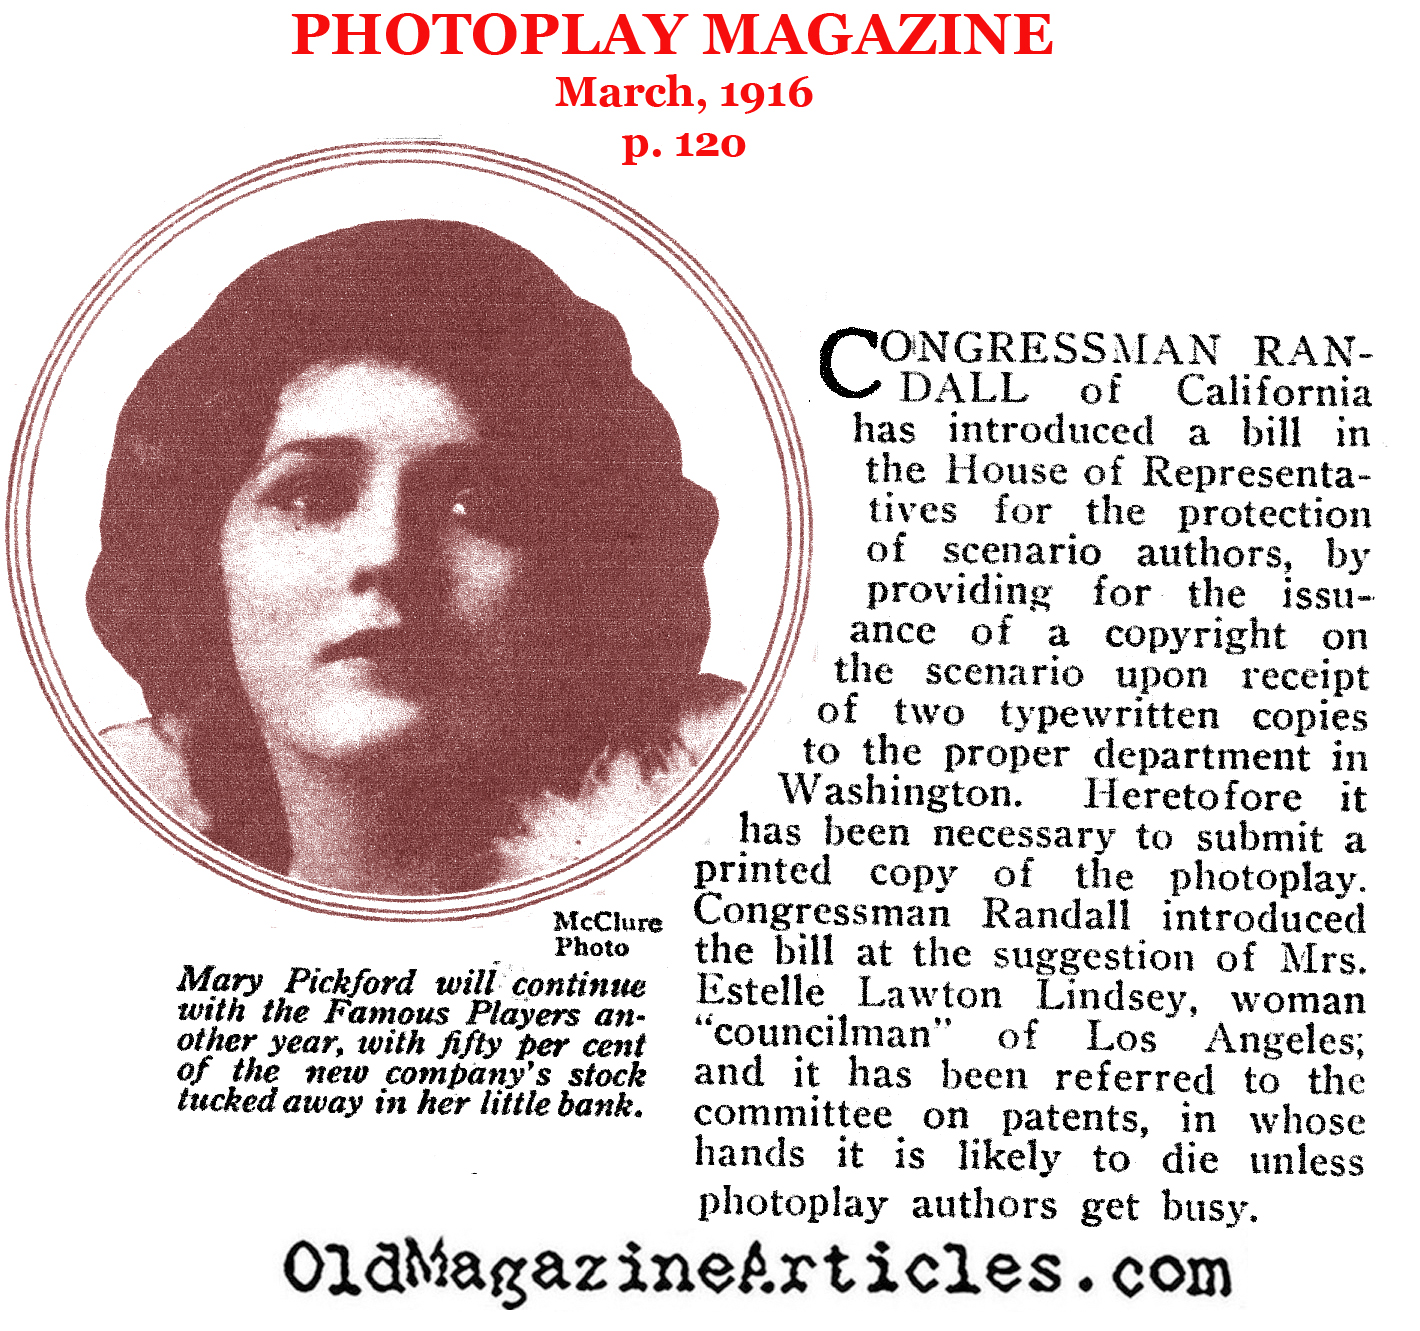 Anti-Plagerism Legislation Introduced (Photoplay Magazine, 1916)